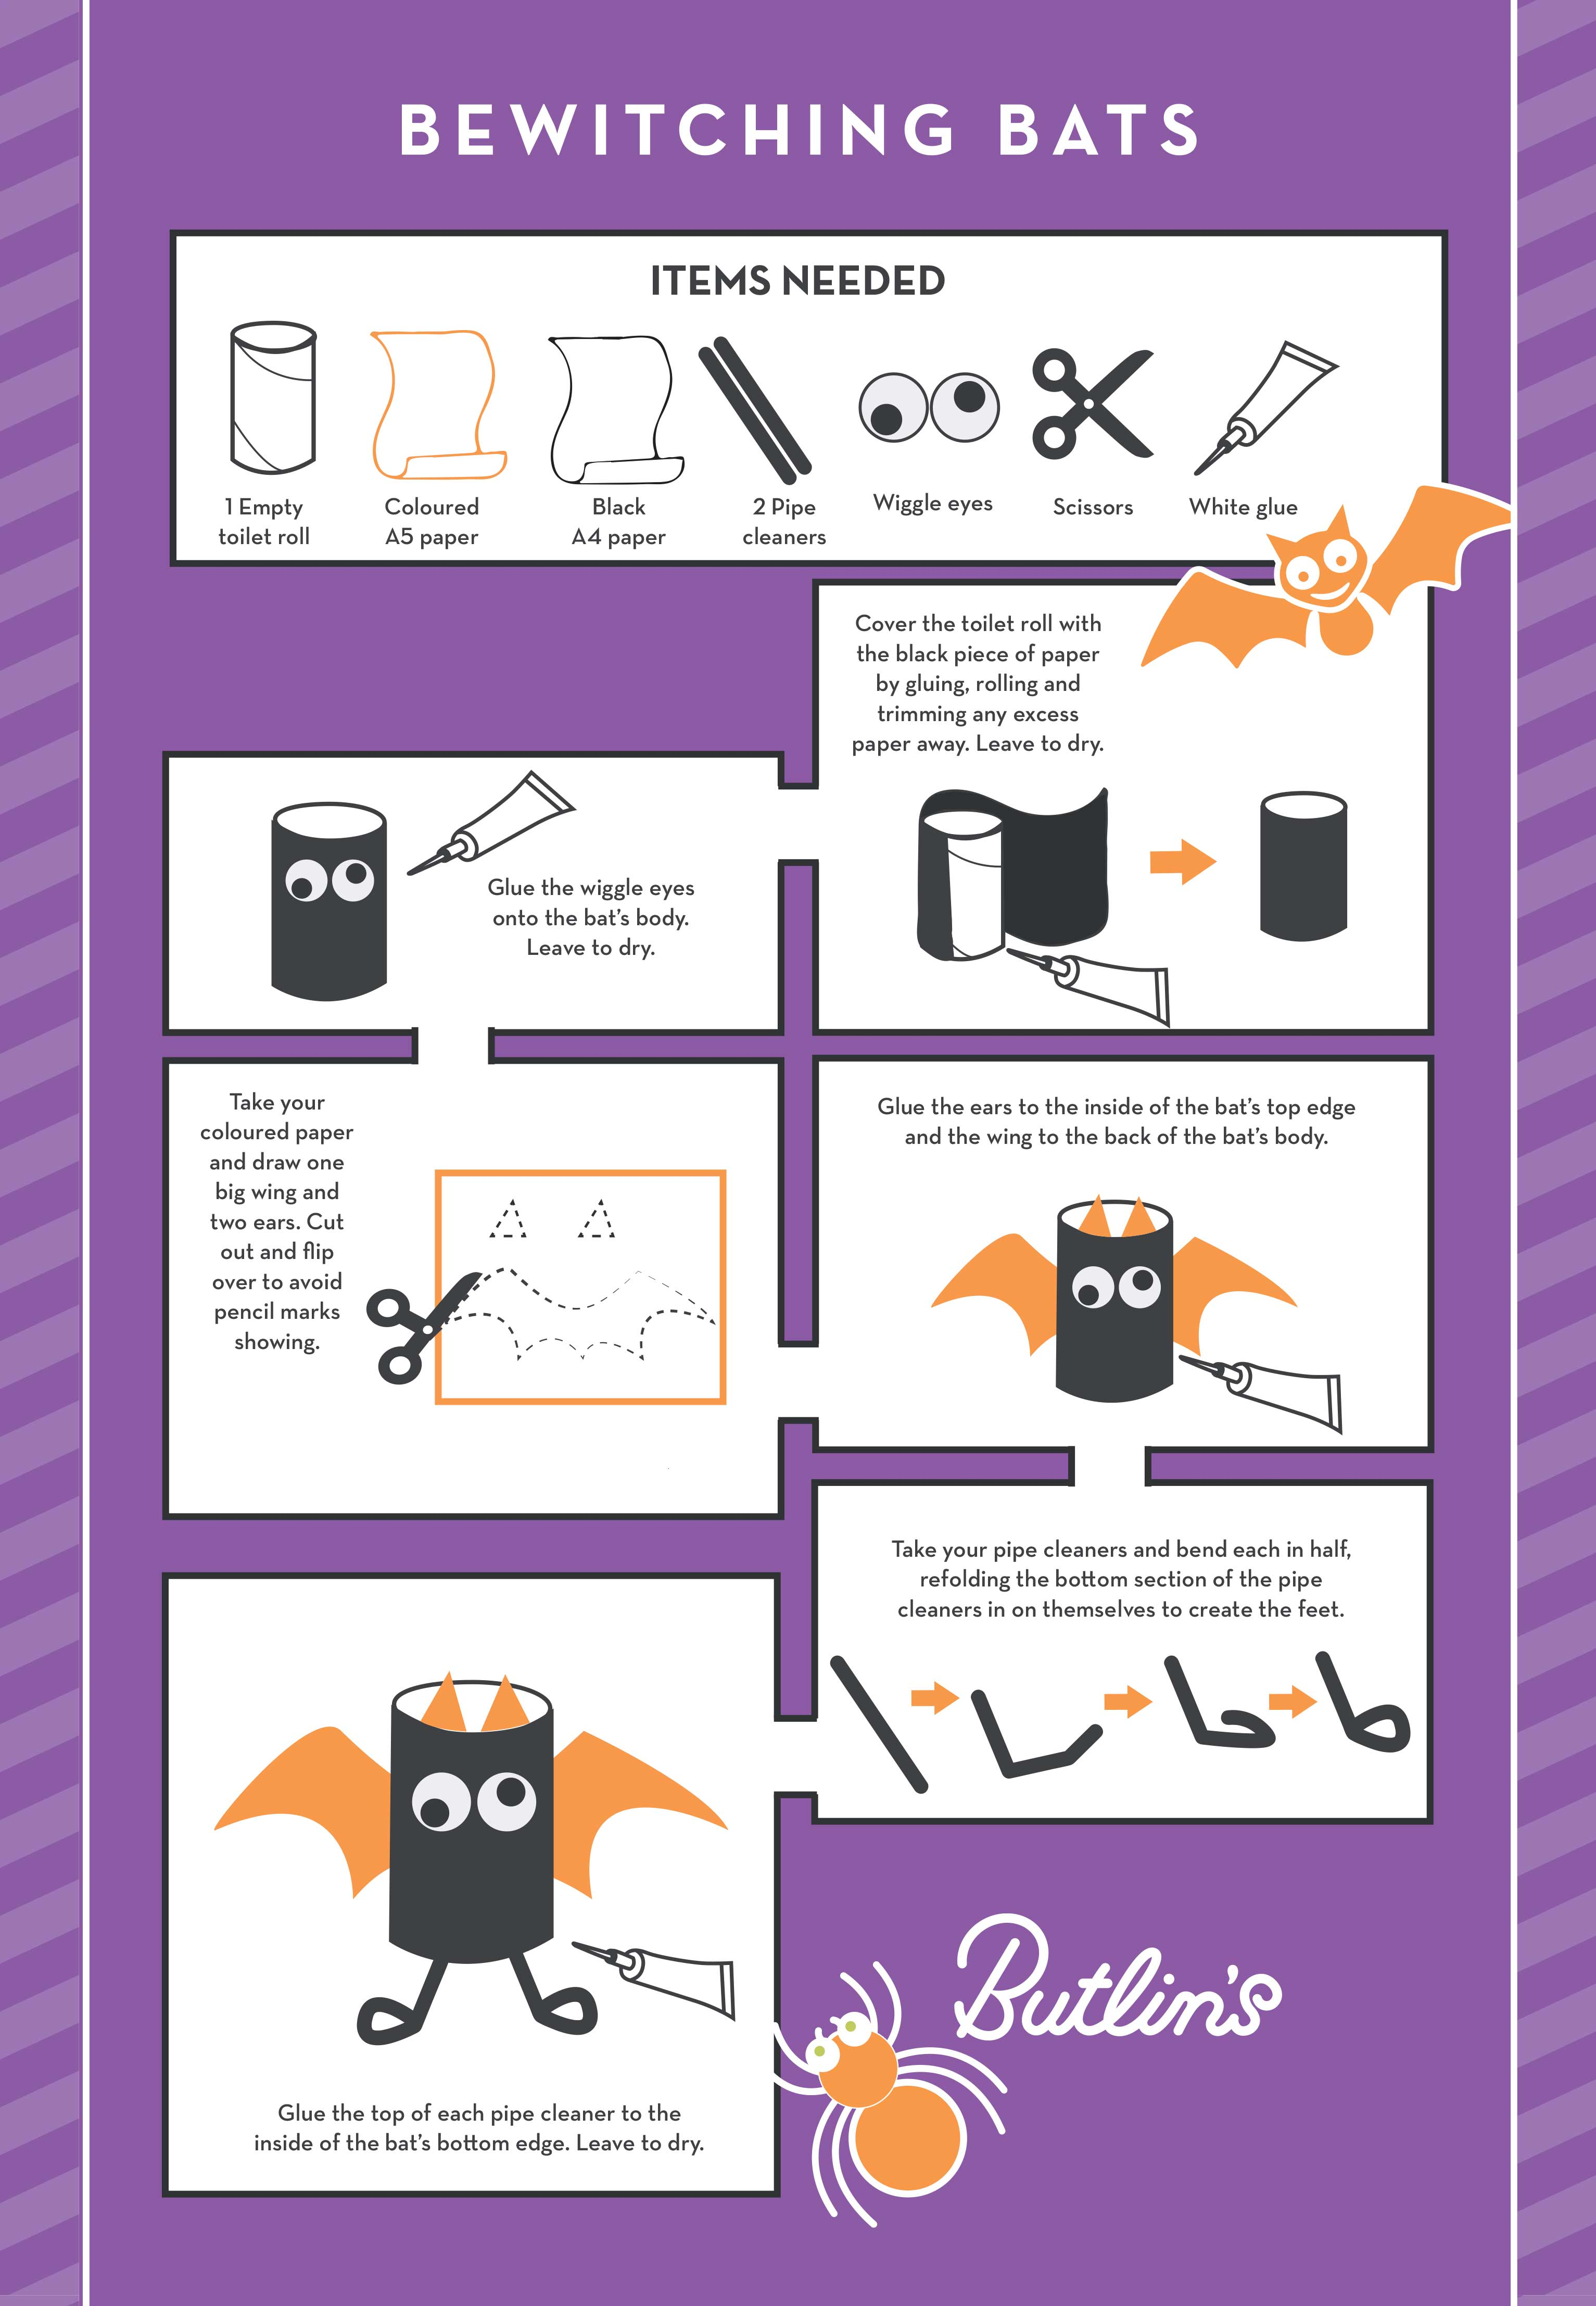 Butlins Blog | Halloween arts and crafts | bewitching bats